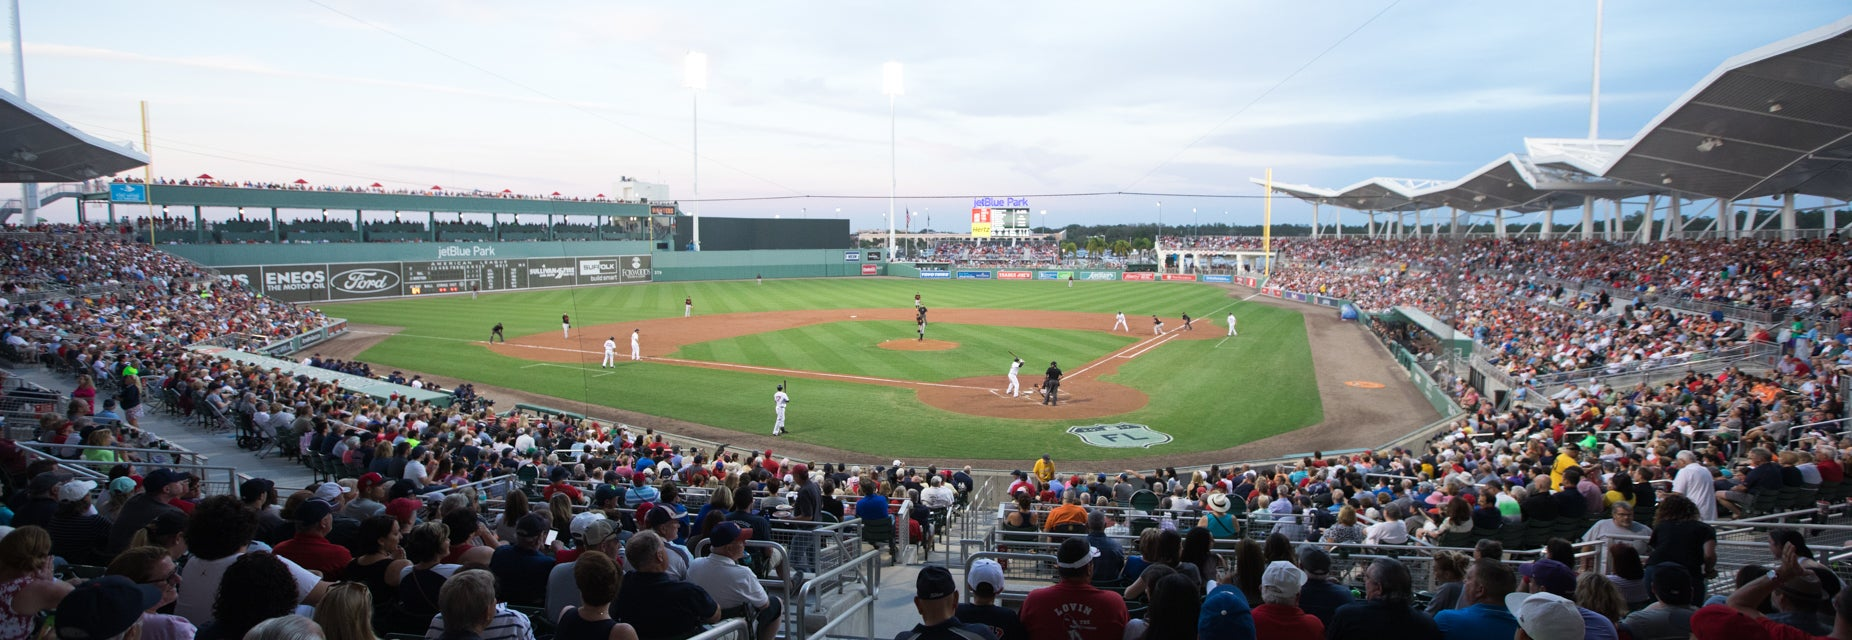 Seat view from Infield Grandstand